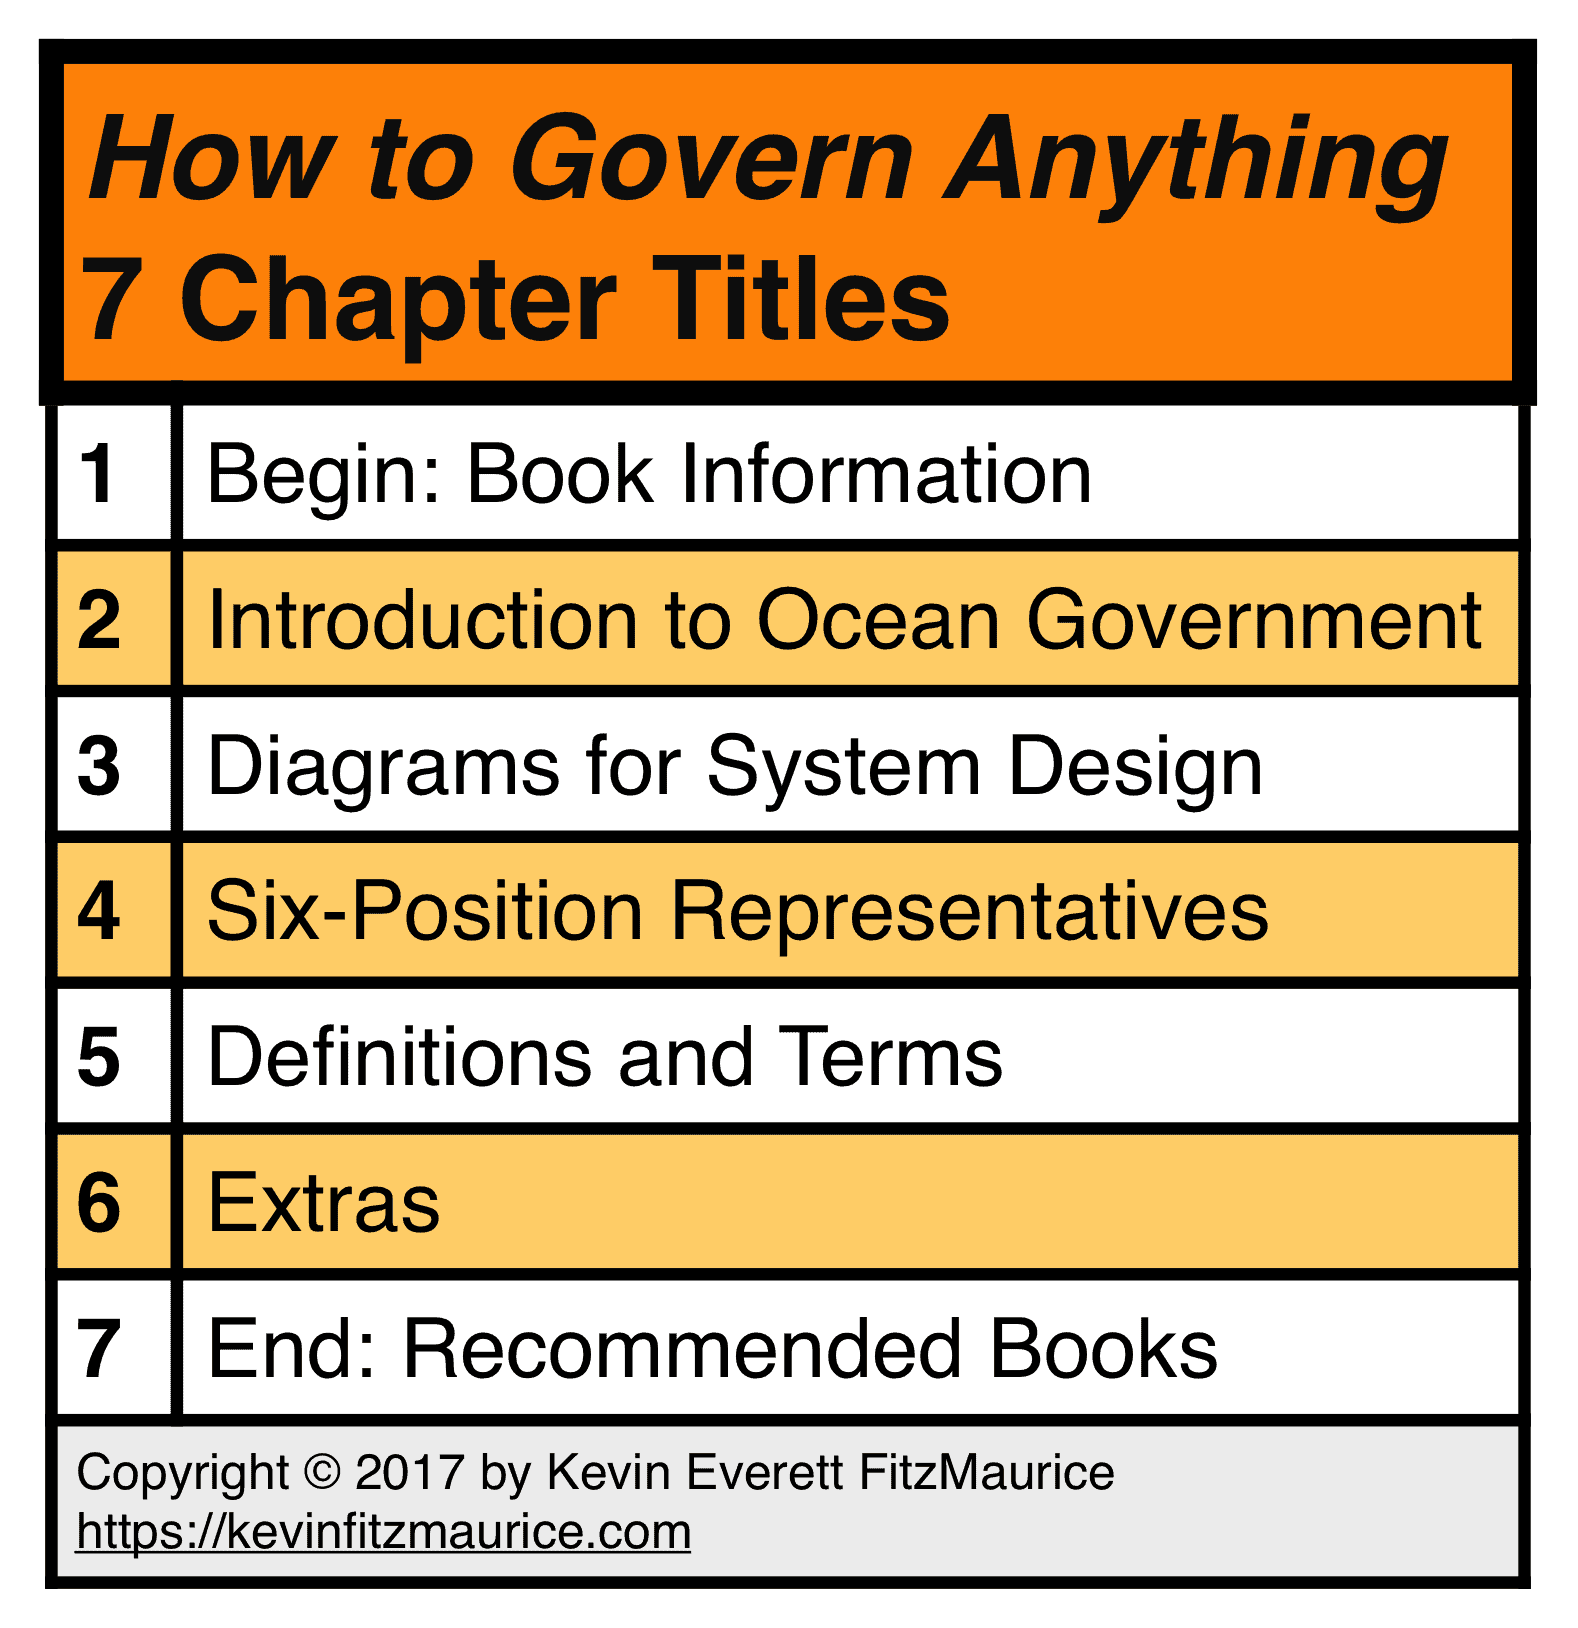 How to Govern Anything Chapters